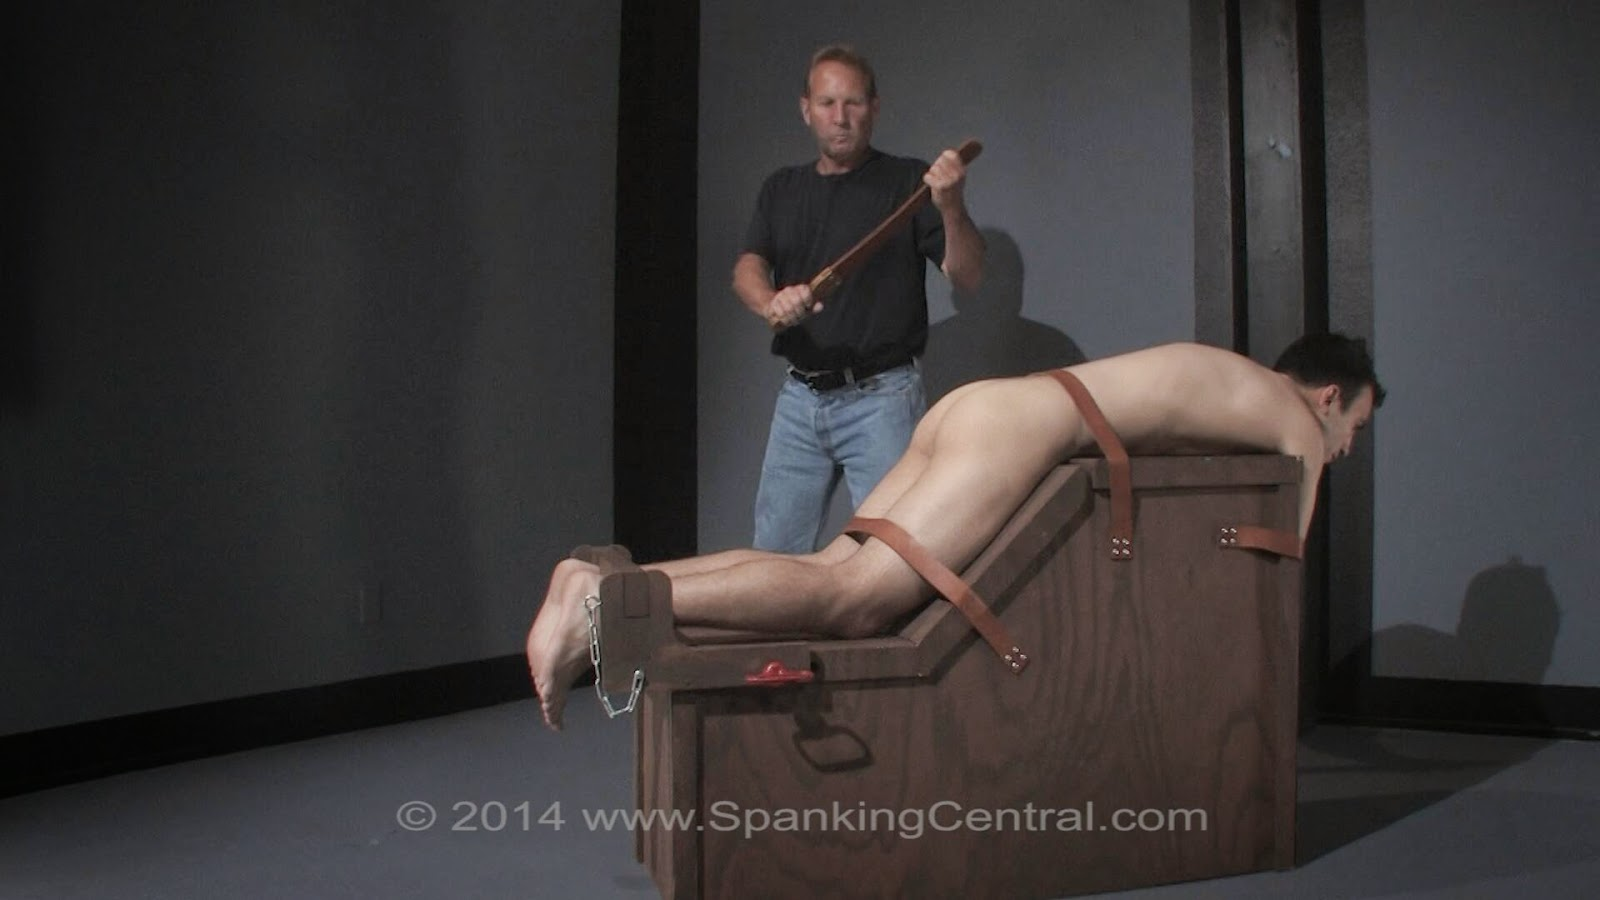 Spanking central free